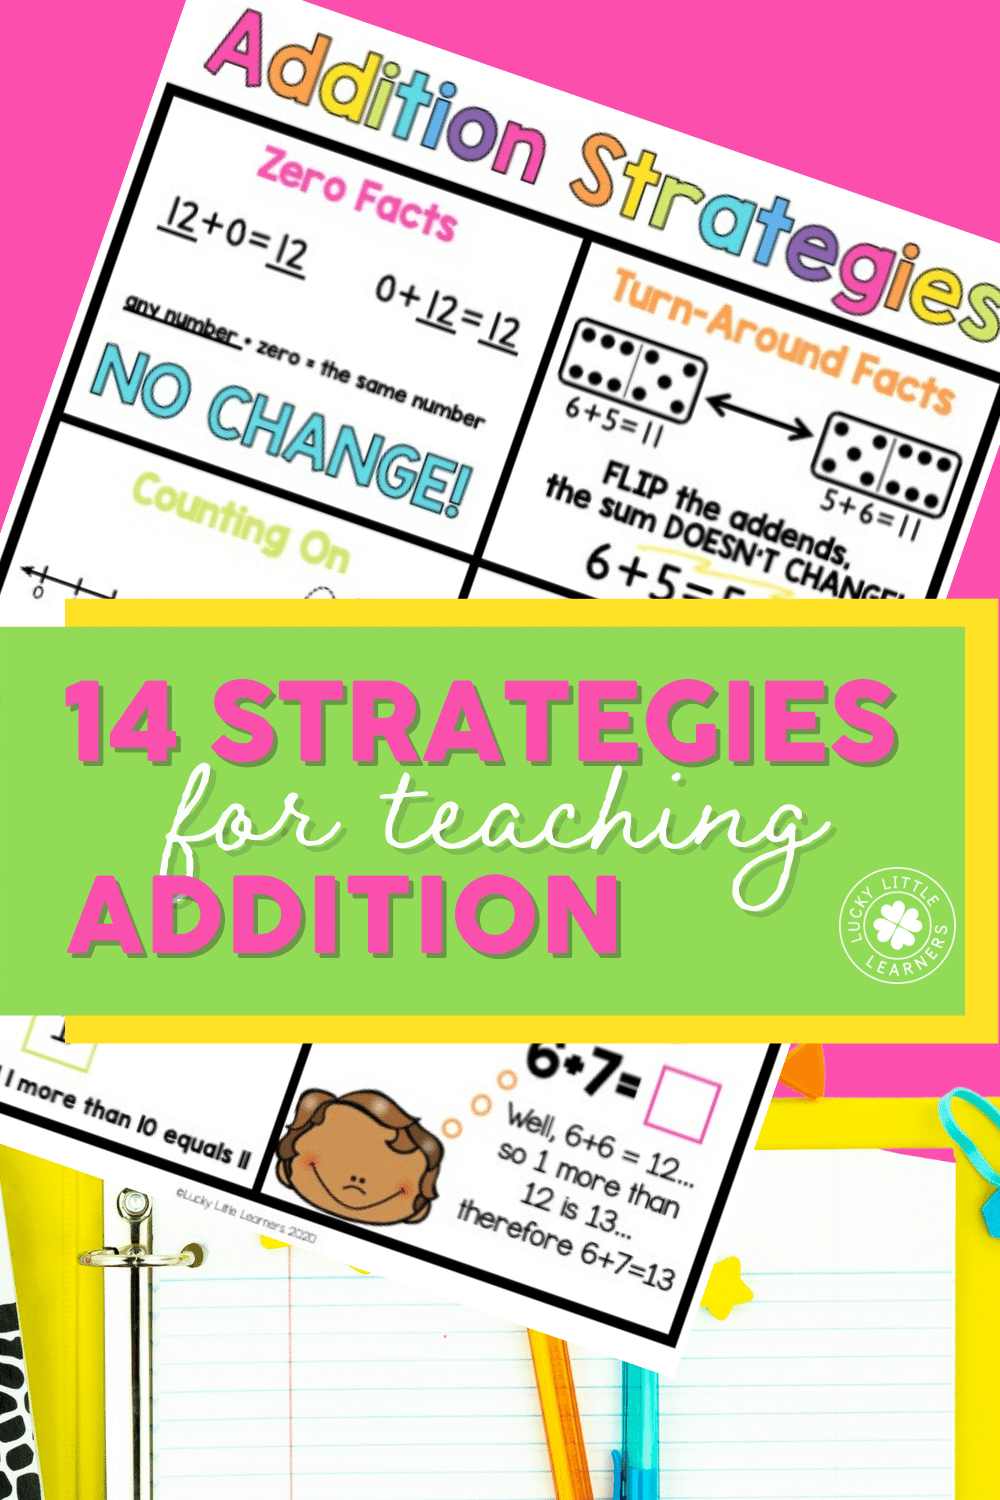 14 strategies for teaching addition